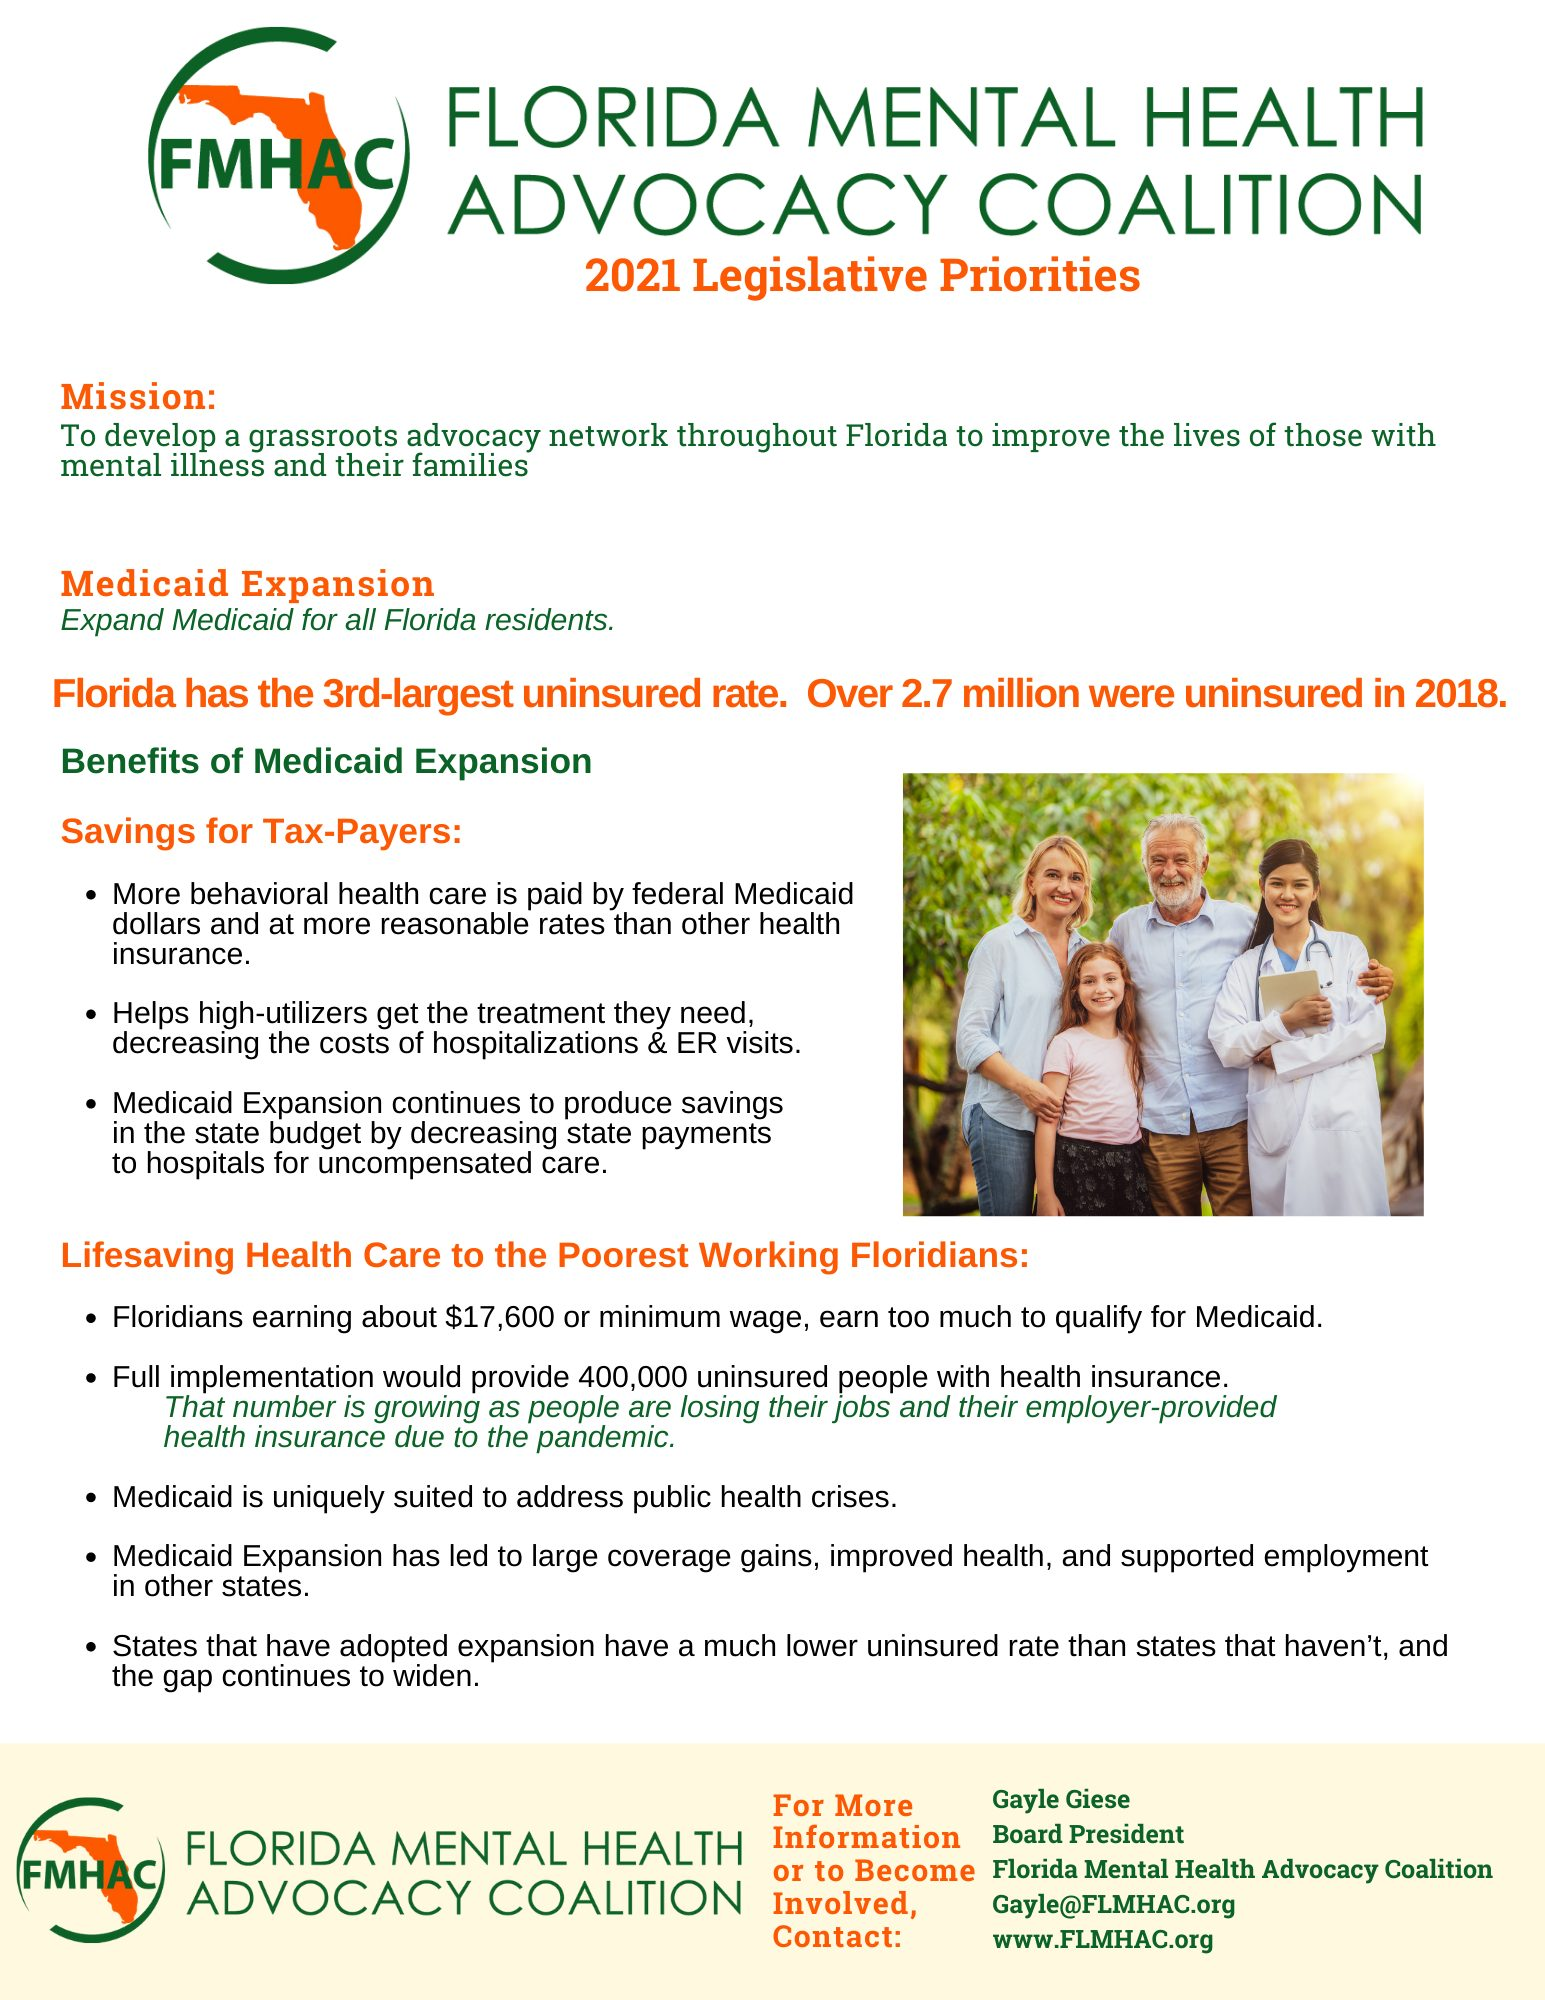 FLMHAC-Flyer-2021-Medicaid-Expansion-1-page